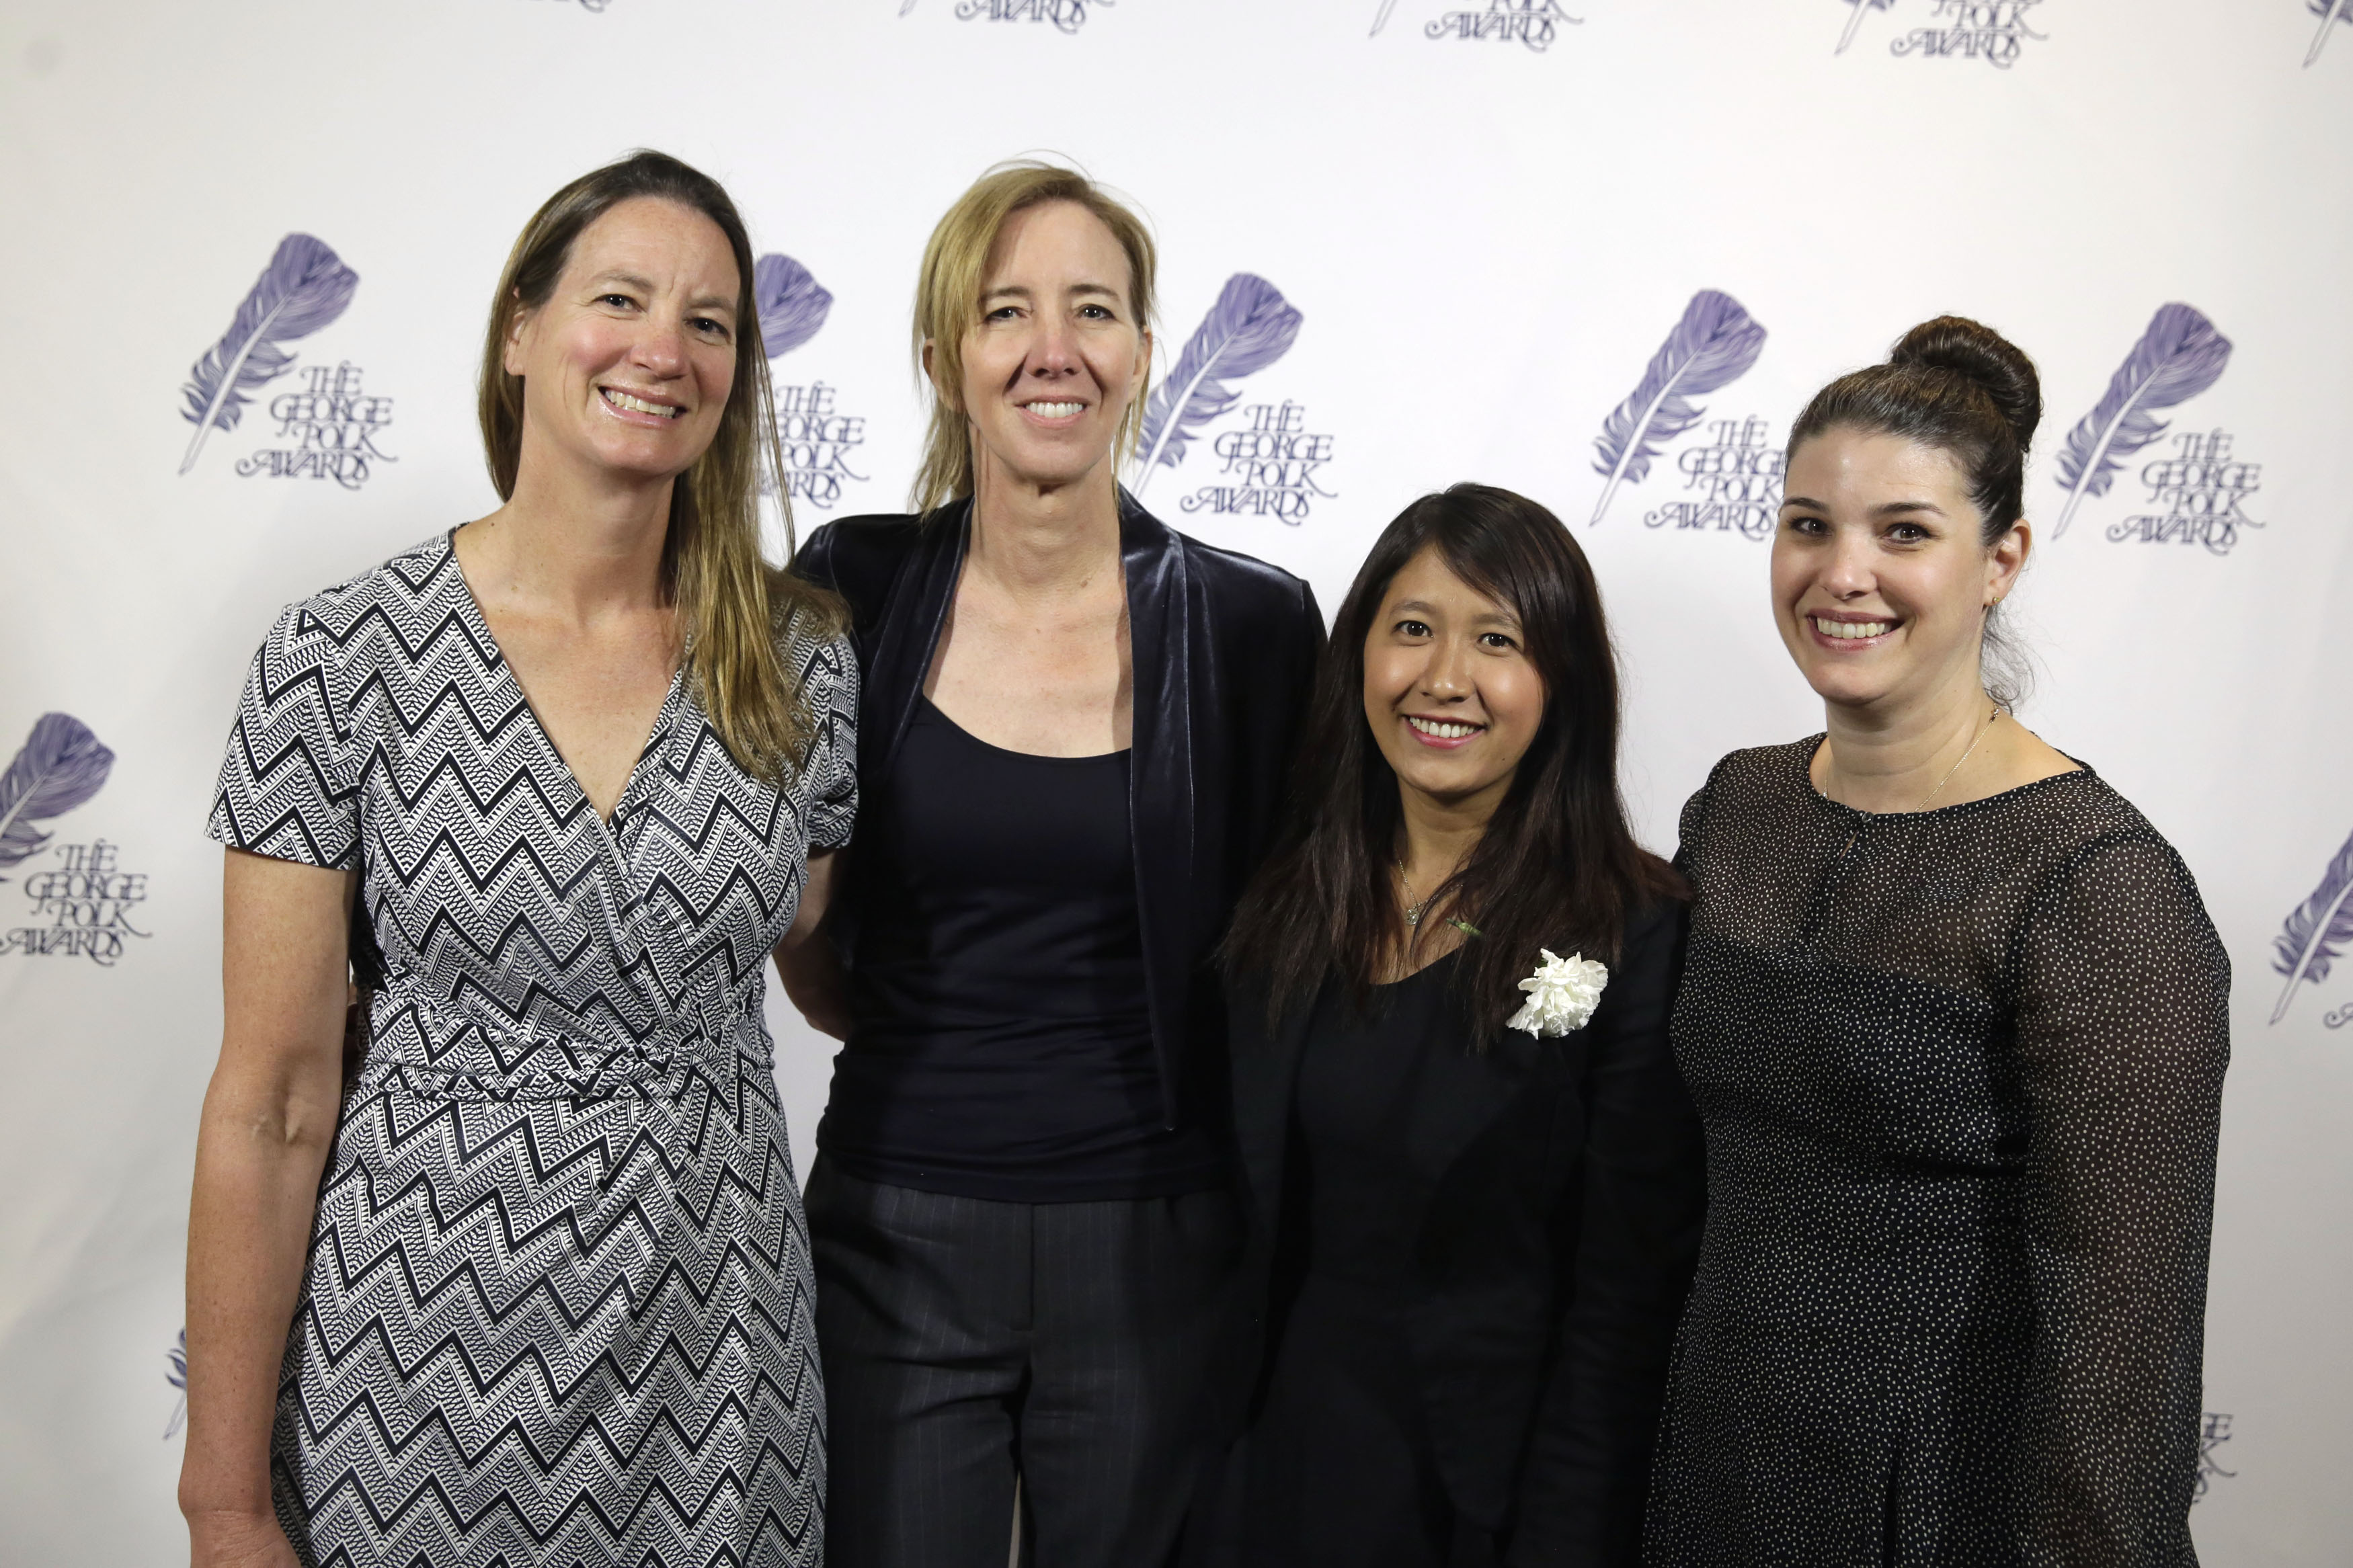 The AP team that investigated seafood caught by slaves poses at the George Polk Awards luncheon in New York,  Friday, April 8, 2016. From left: Martha Mendoza, Robin McDowell, Esther Htusan and Margie Mason. (AP Photo/Richard Drew)